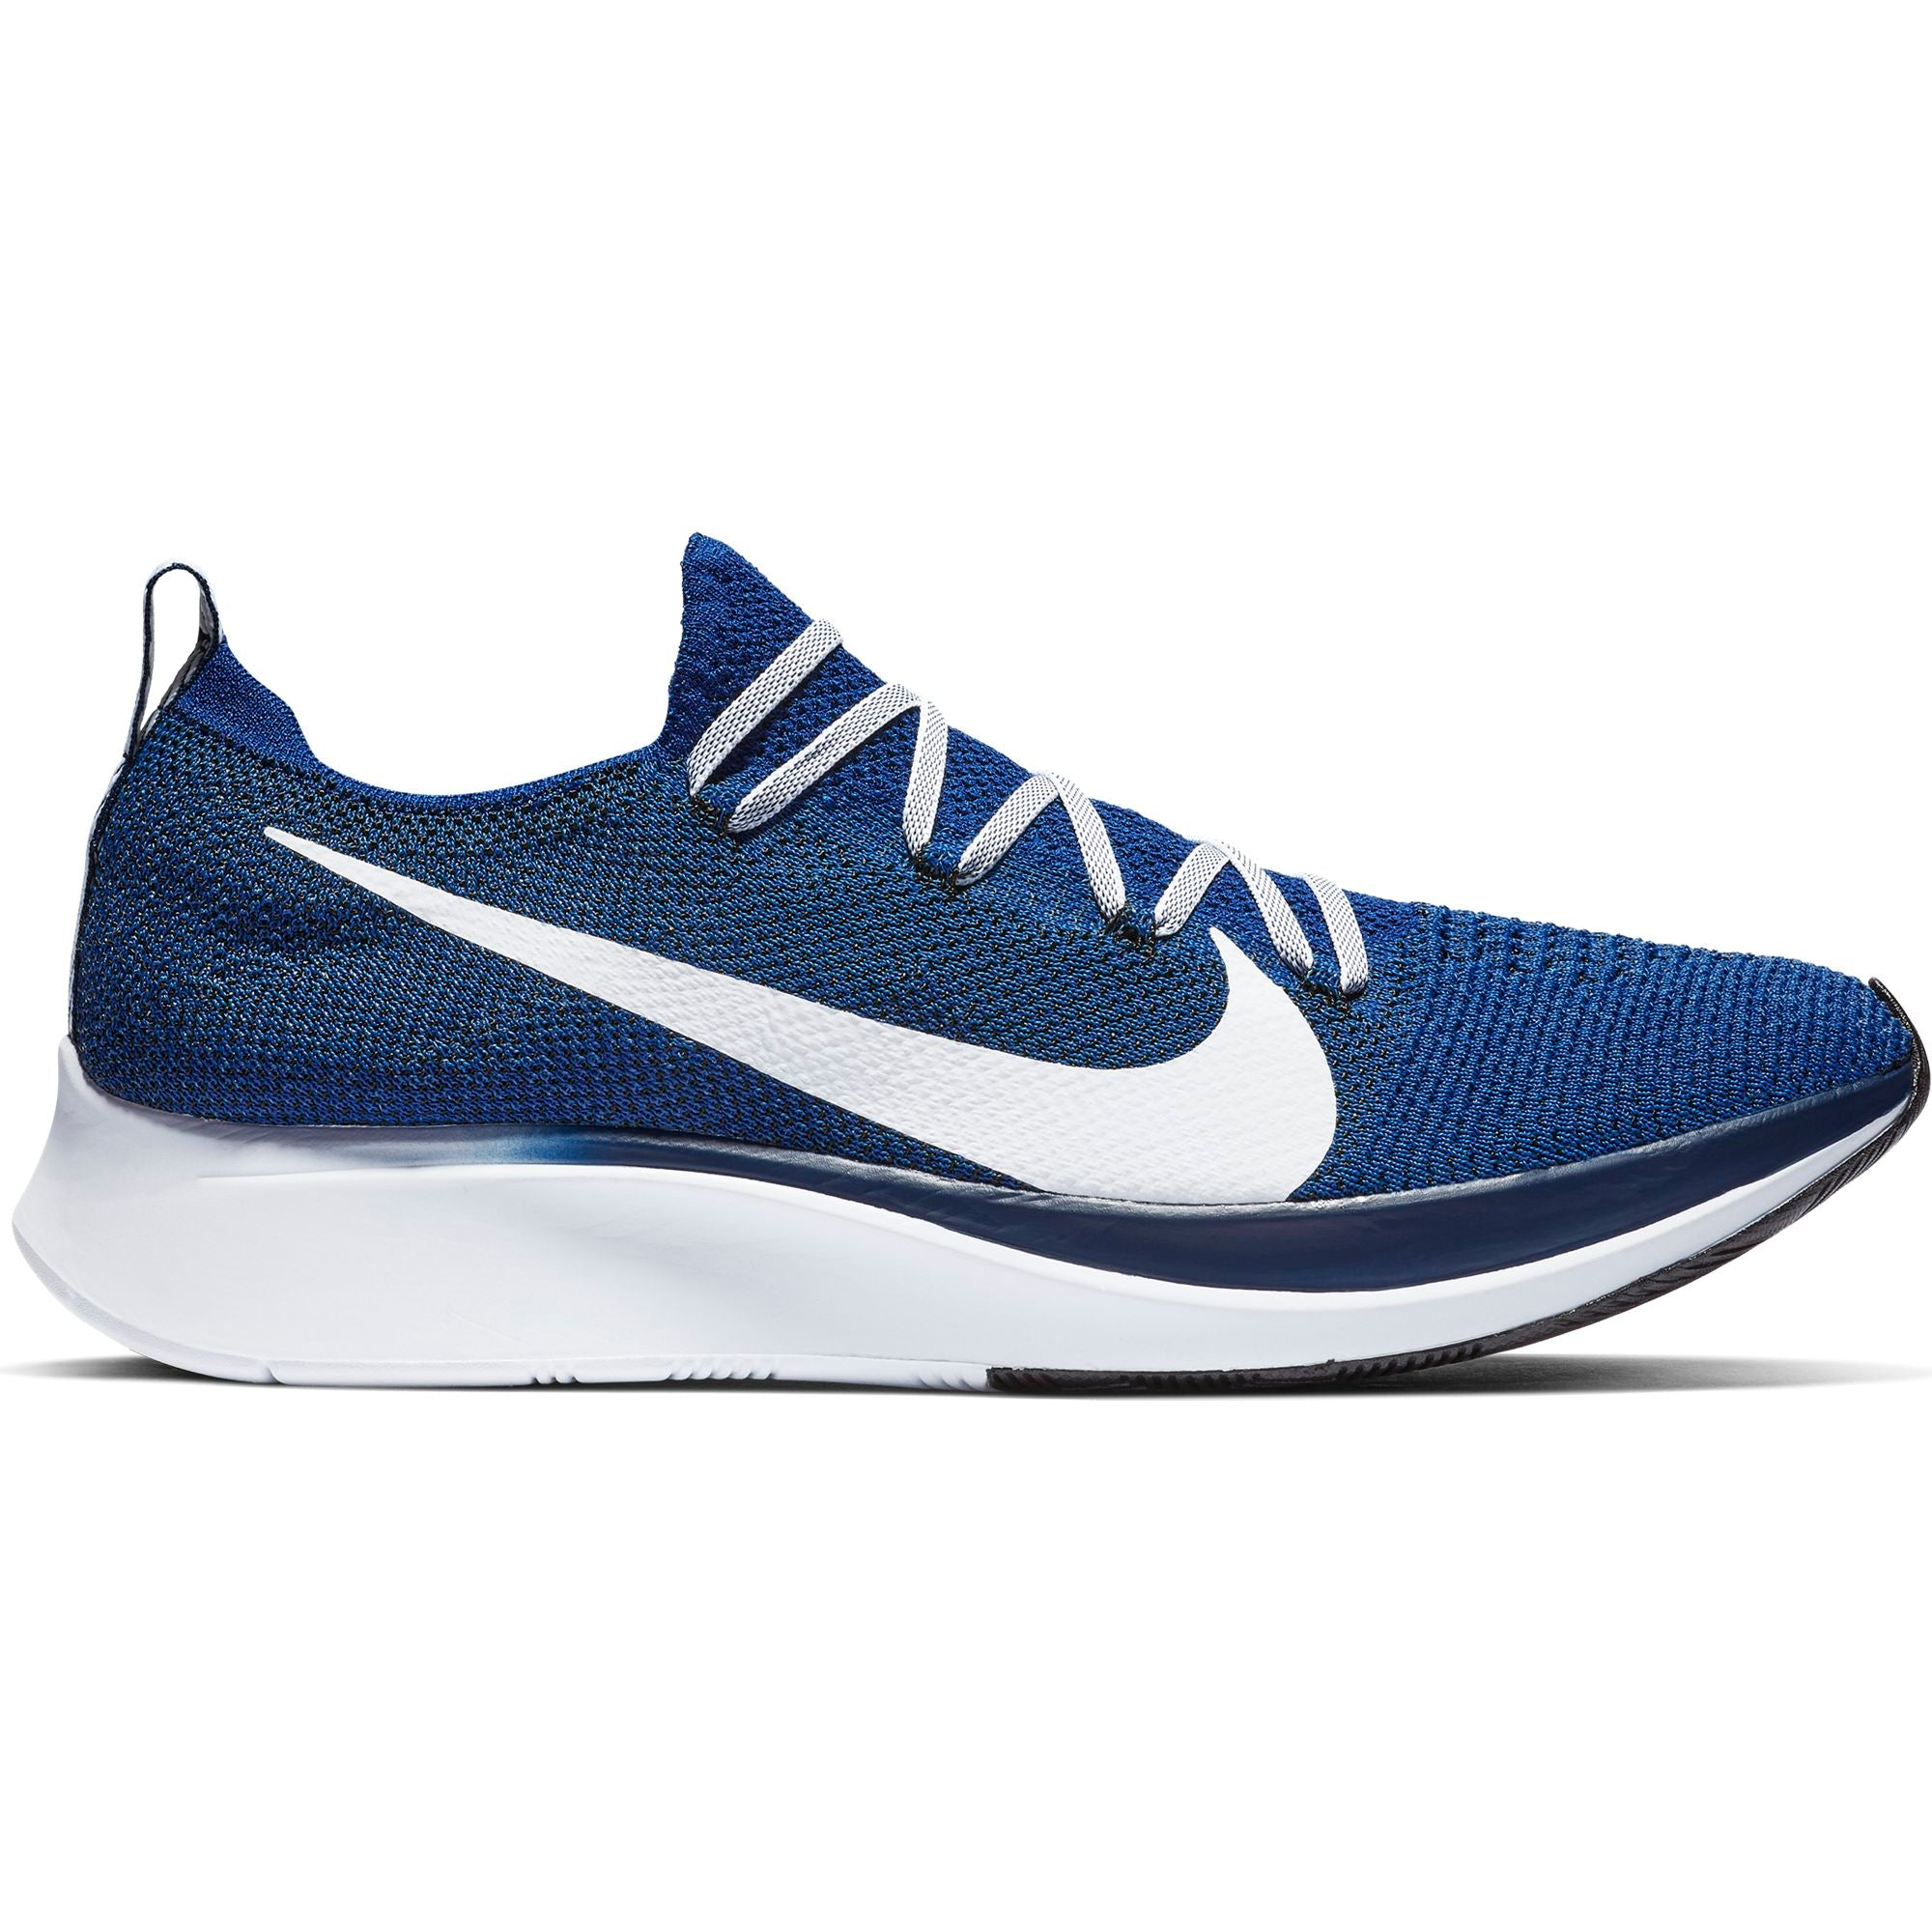 818e25b6b343d Men s Zoom Fly Flyknit Running Shoes - Deep Royal Blue Void White – Gazelle  Sports